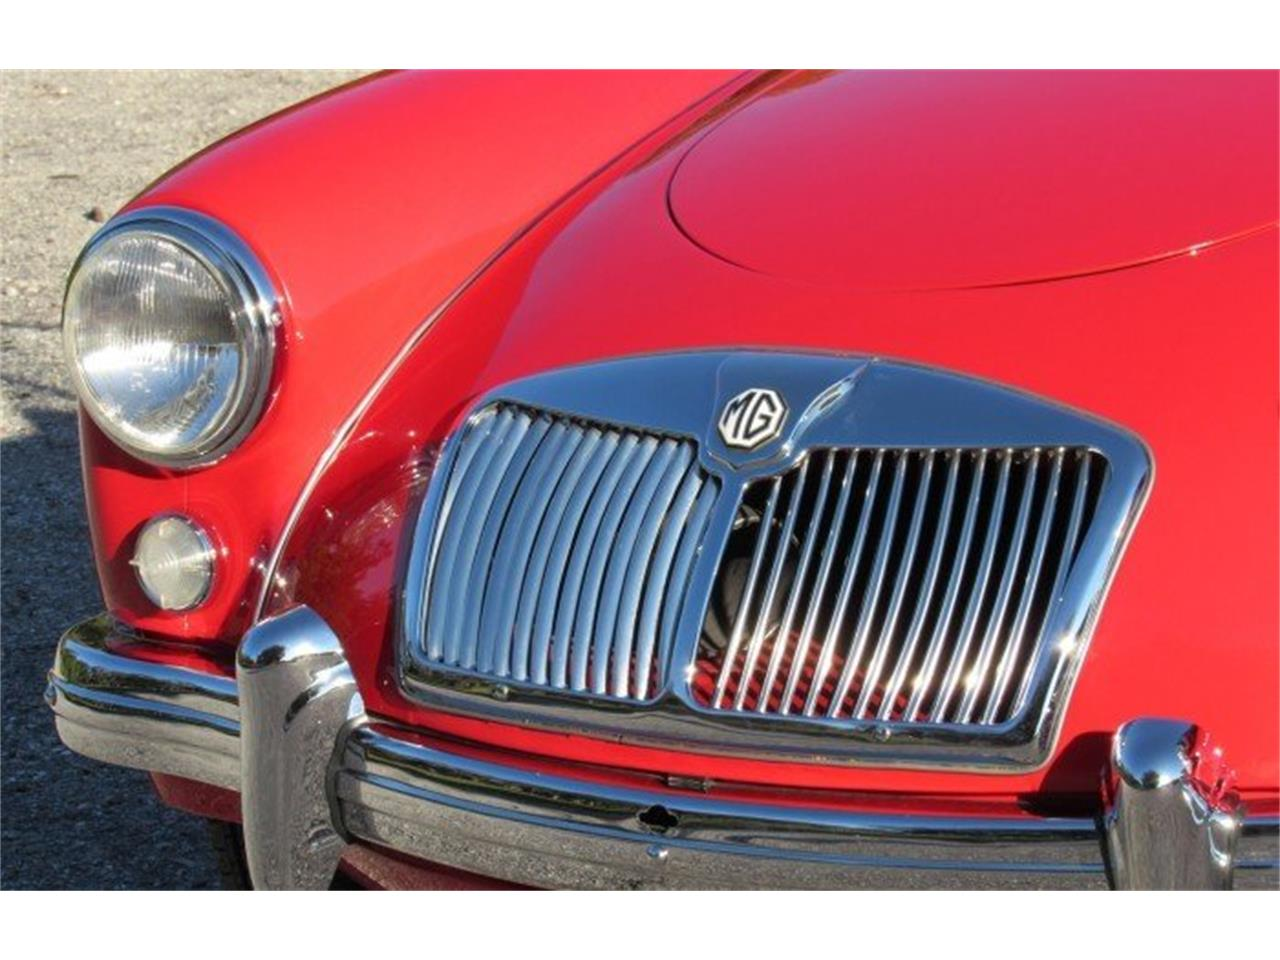 Large Picture of '57 MGA located in Punta Gorda Florida Auction Vehicle Offered by Premier Auction Group - PH10